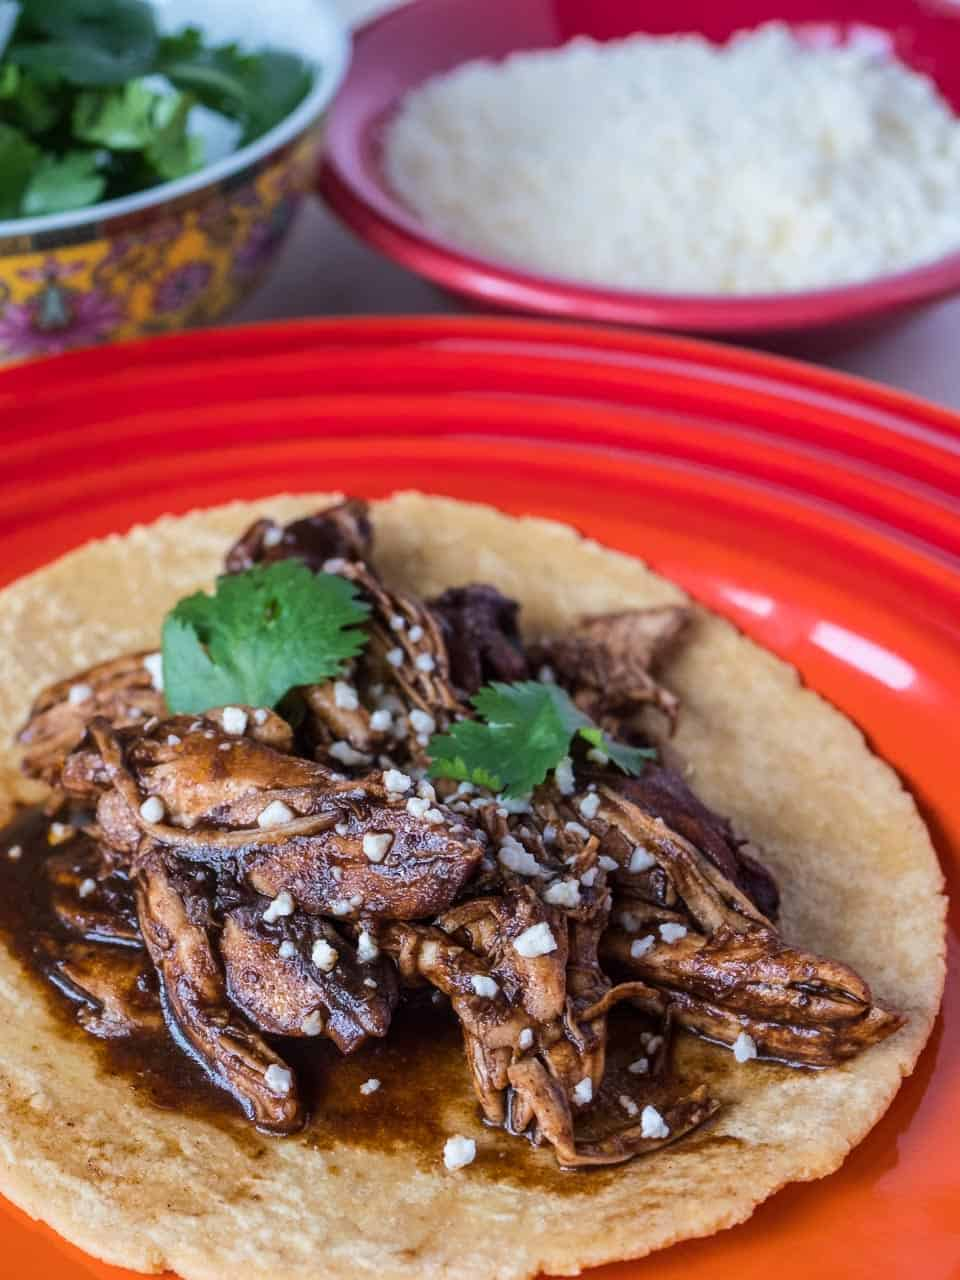 Pressure Cooker Shredded Chicken with Black Mole Sauce | DadCooksDinner.com